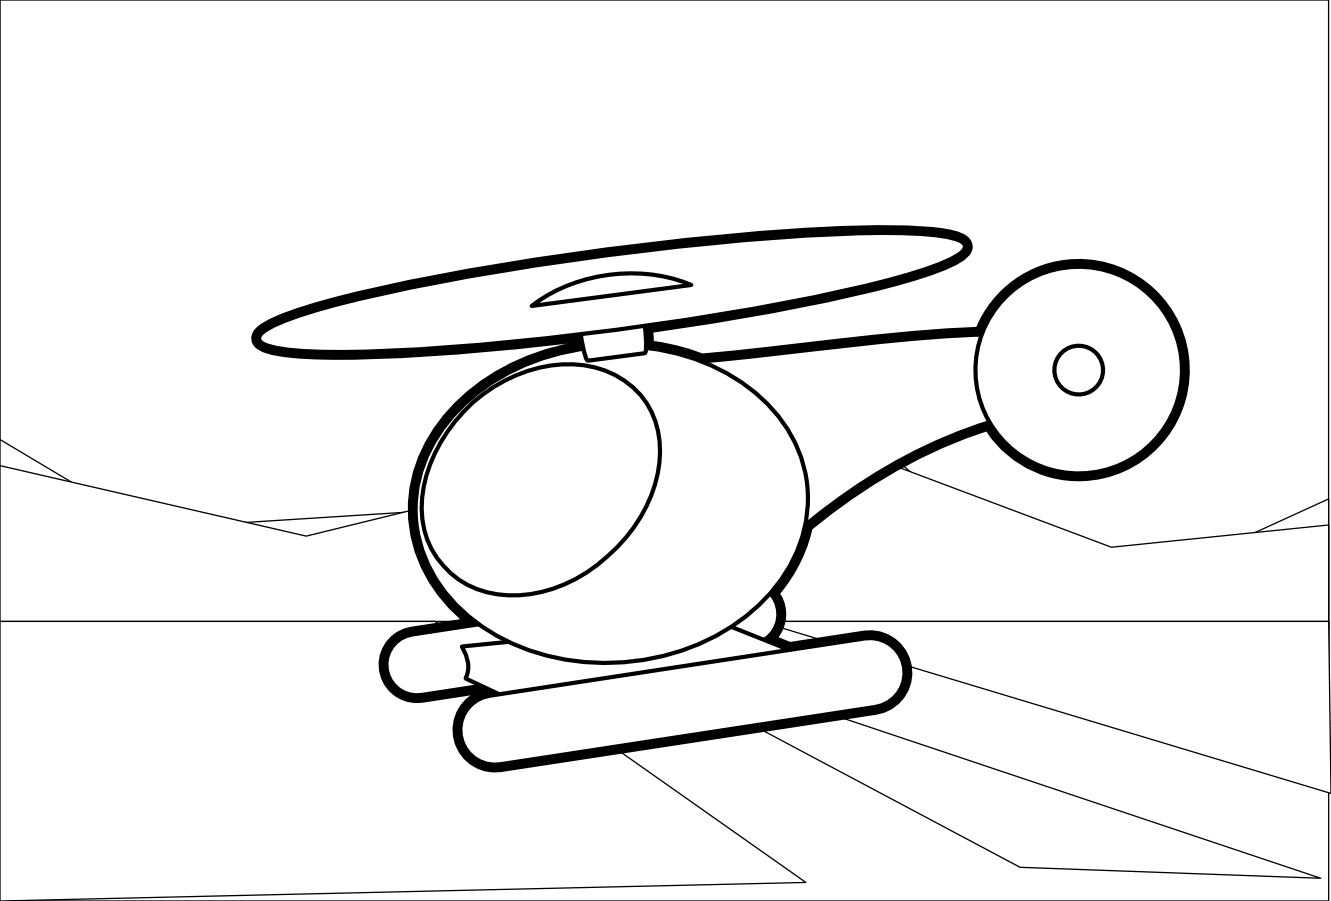 Helicopter Clipart Black And White Clipart Panda